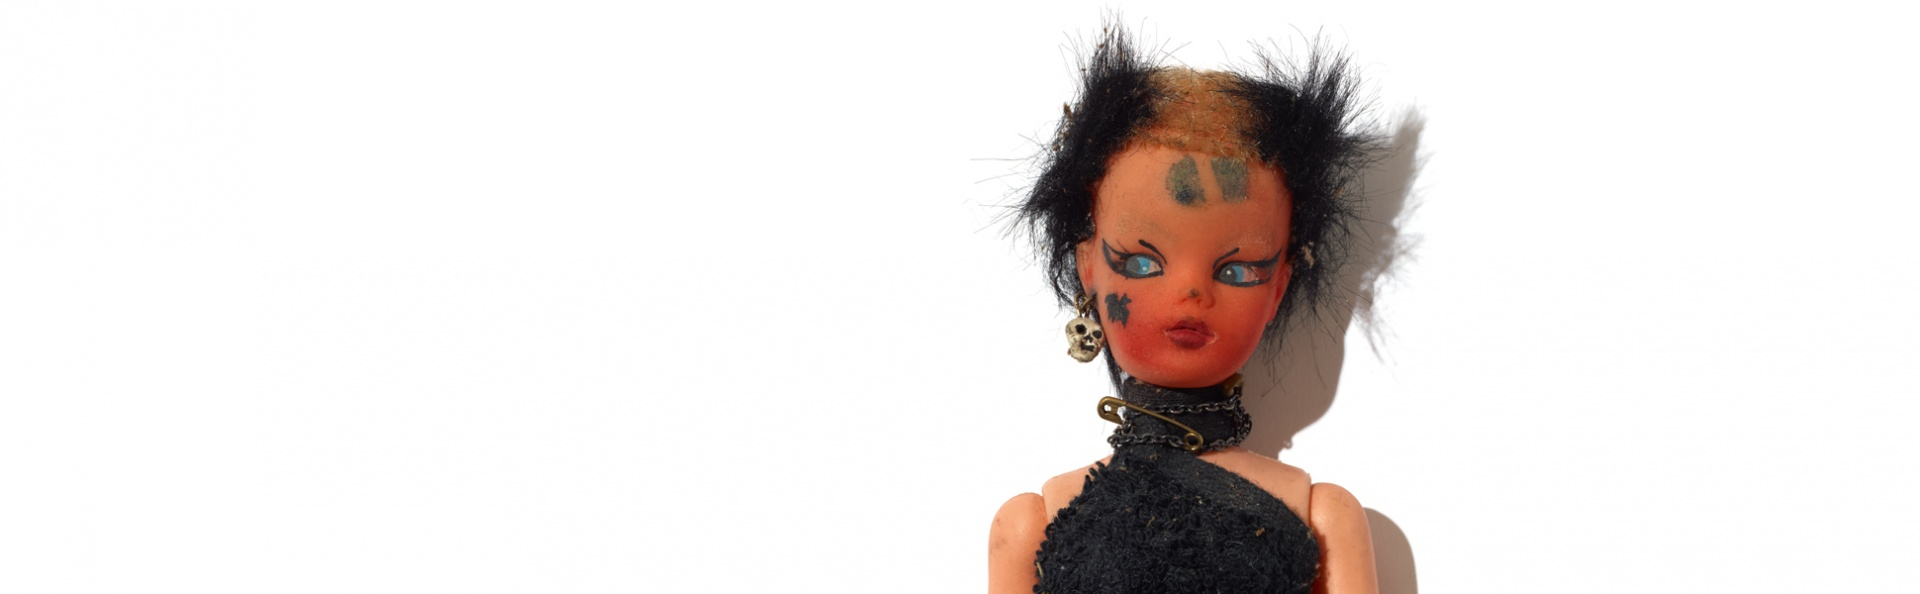 punk-barbie-banner